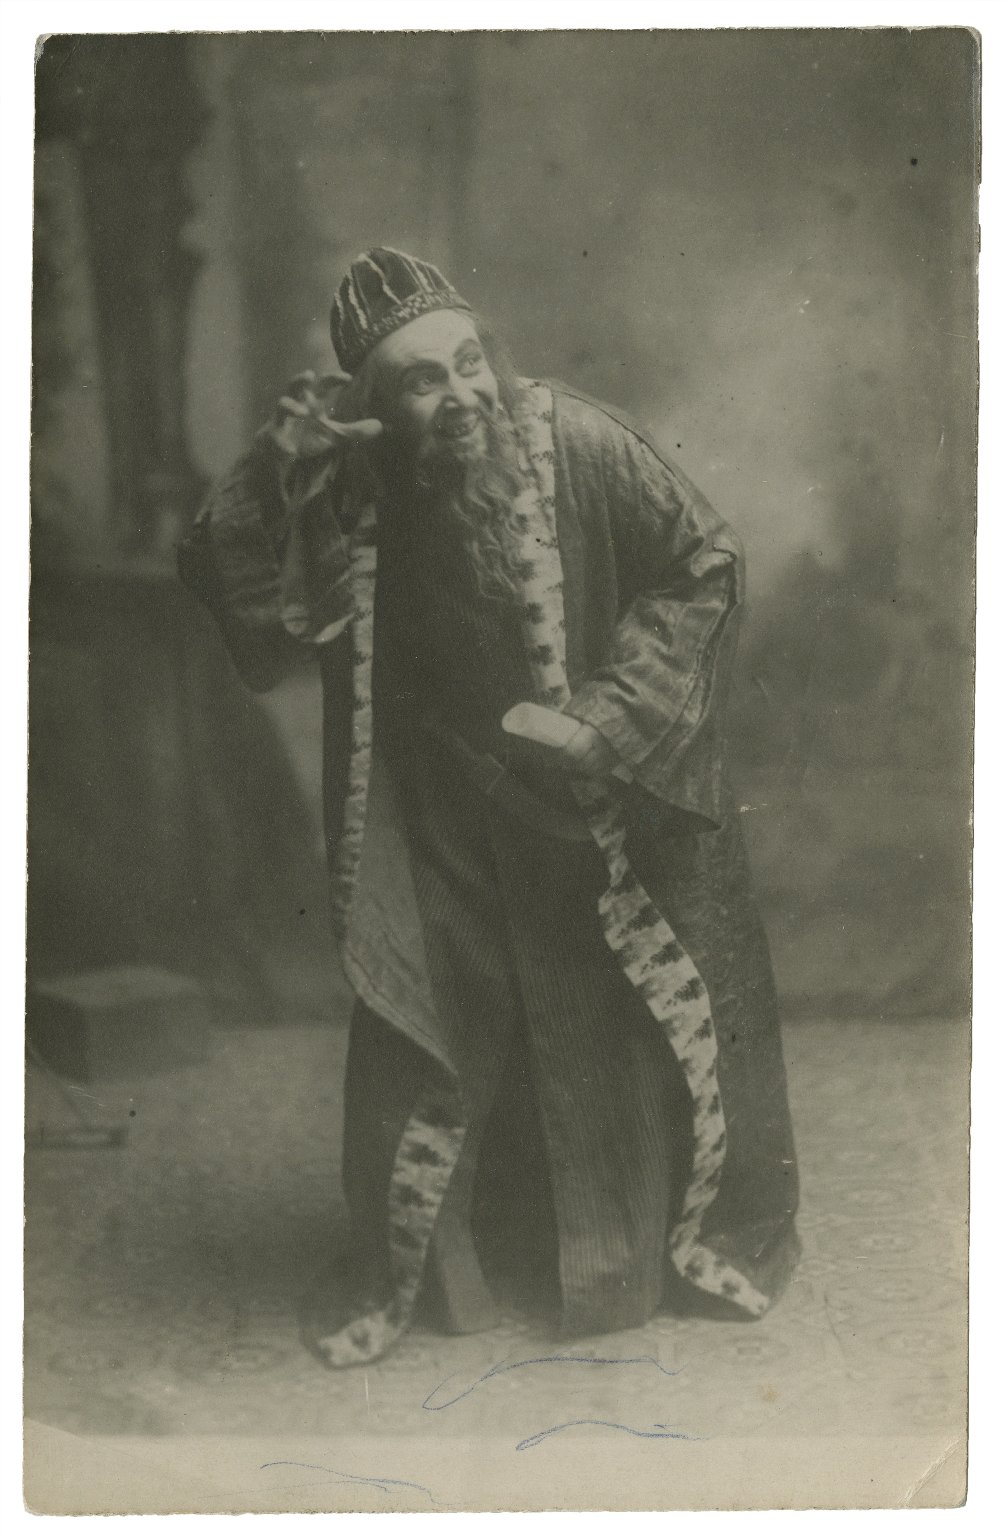 [Emilios Veakis as Shylock, in Shakespeare's Merchant of Venice, in his own theatre in Athens] [graphic].